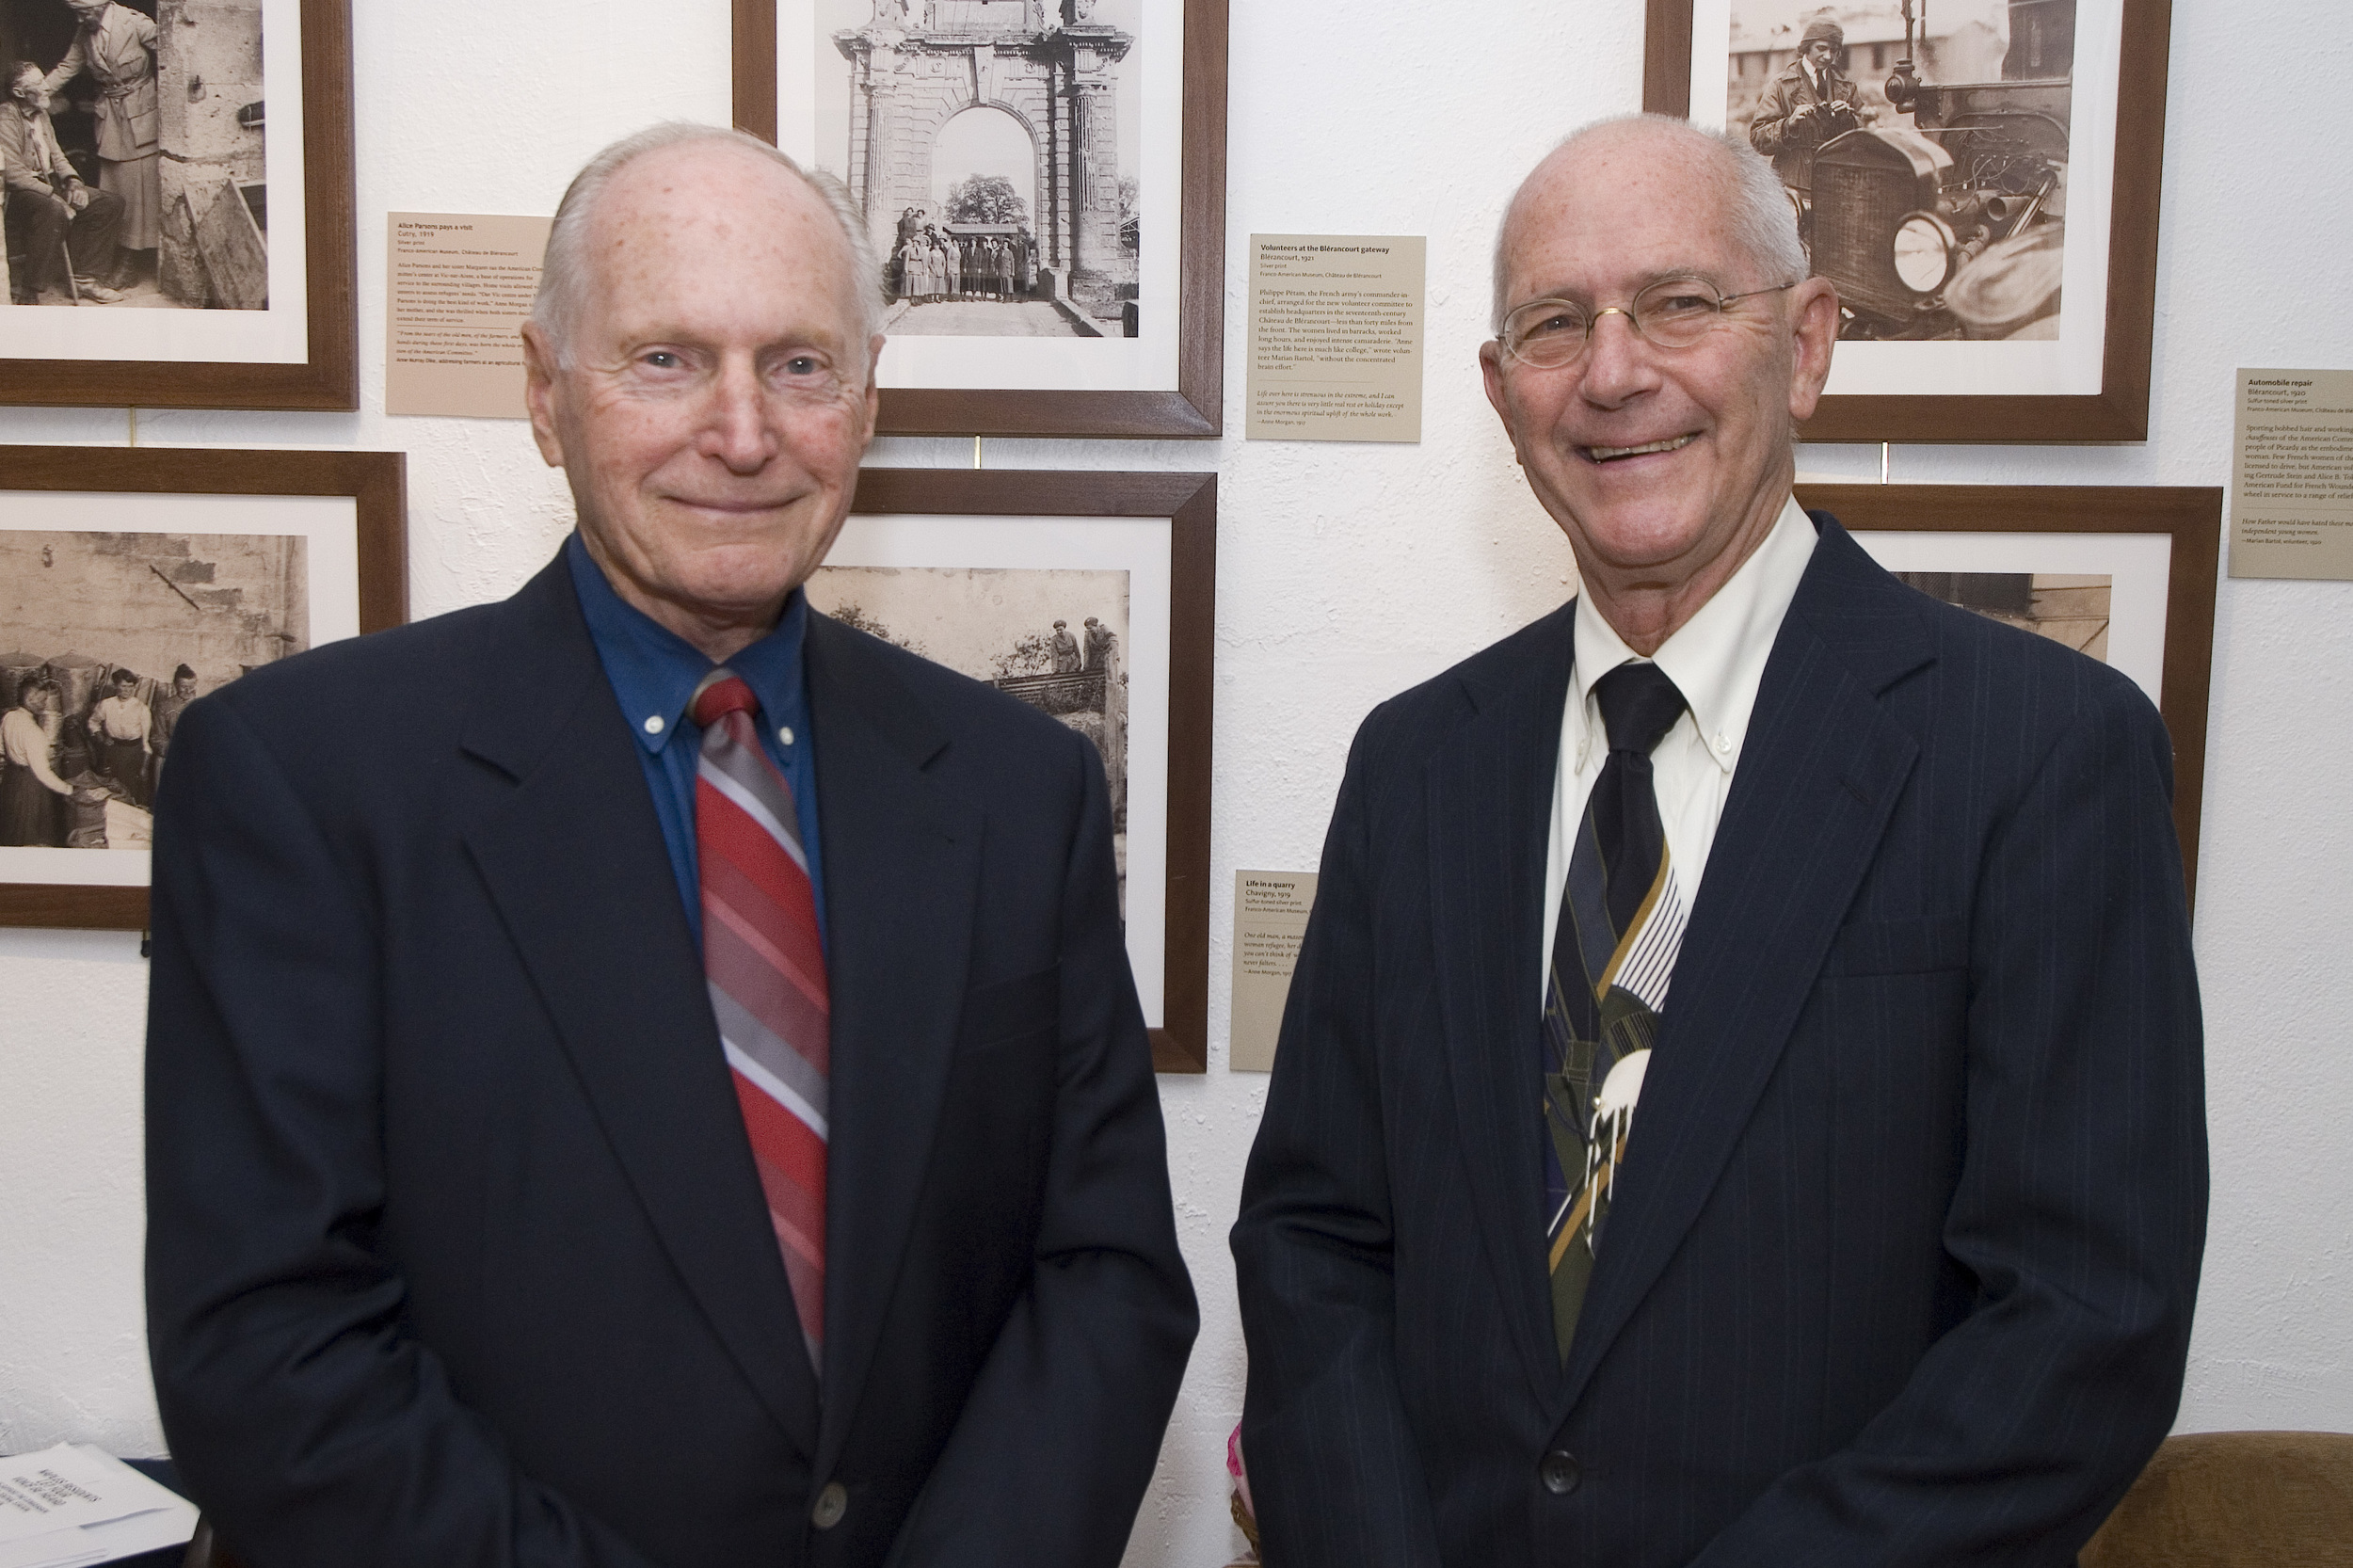 Charles L Marshall Jr. & Richard L Tooke.jpg